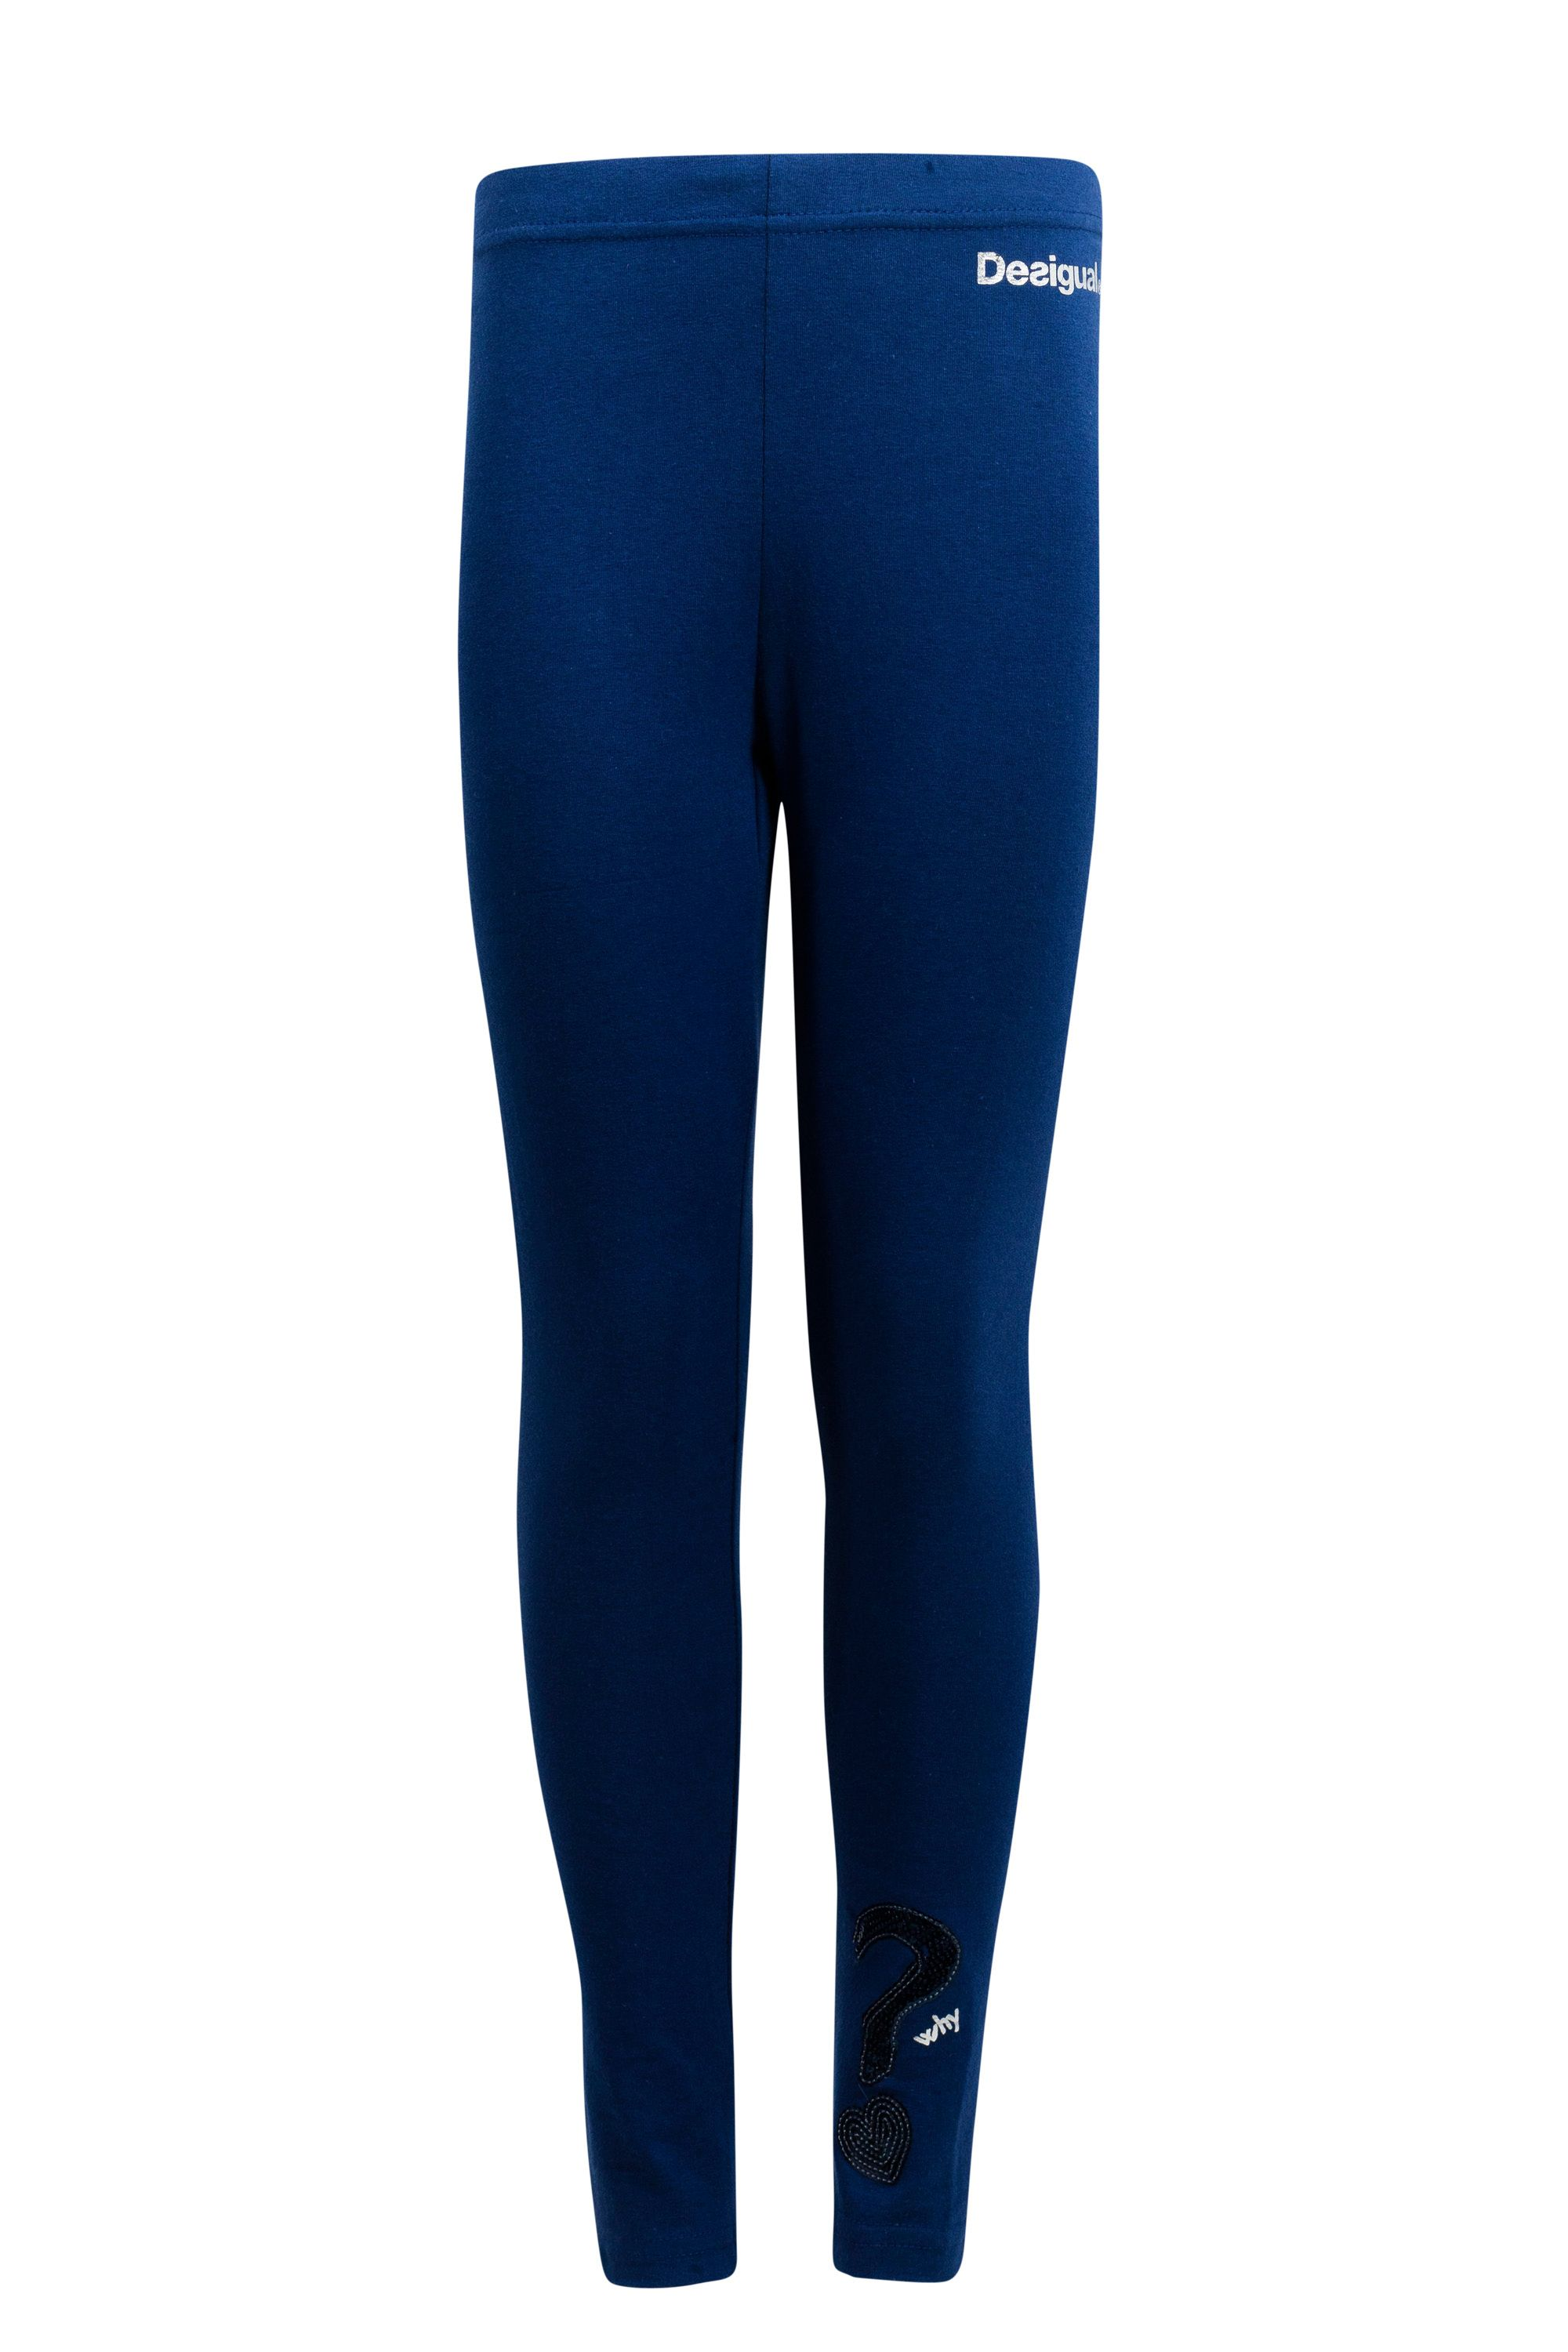 Girls johnsonn leggings